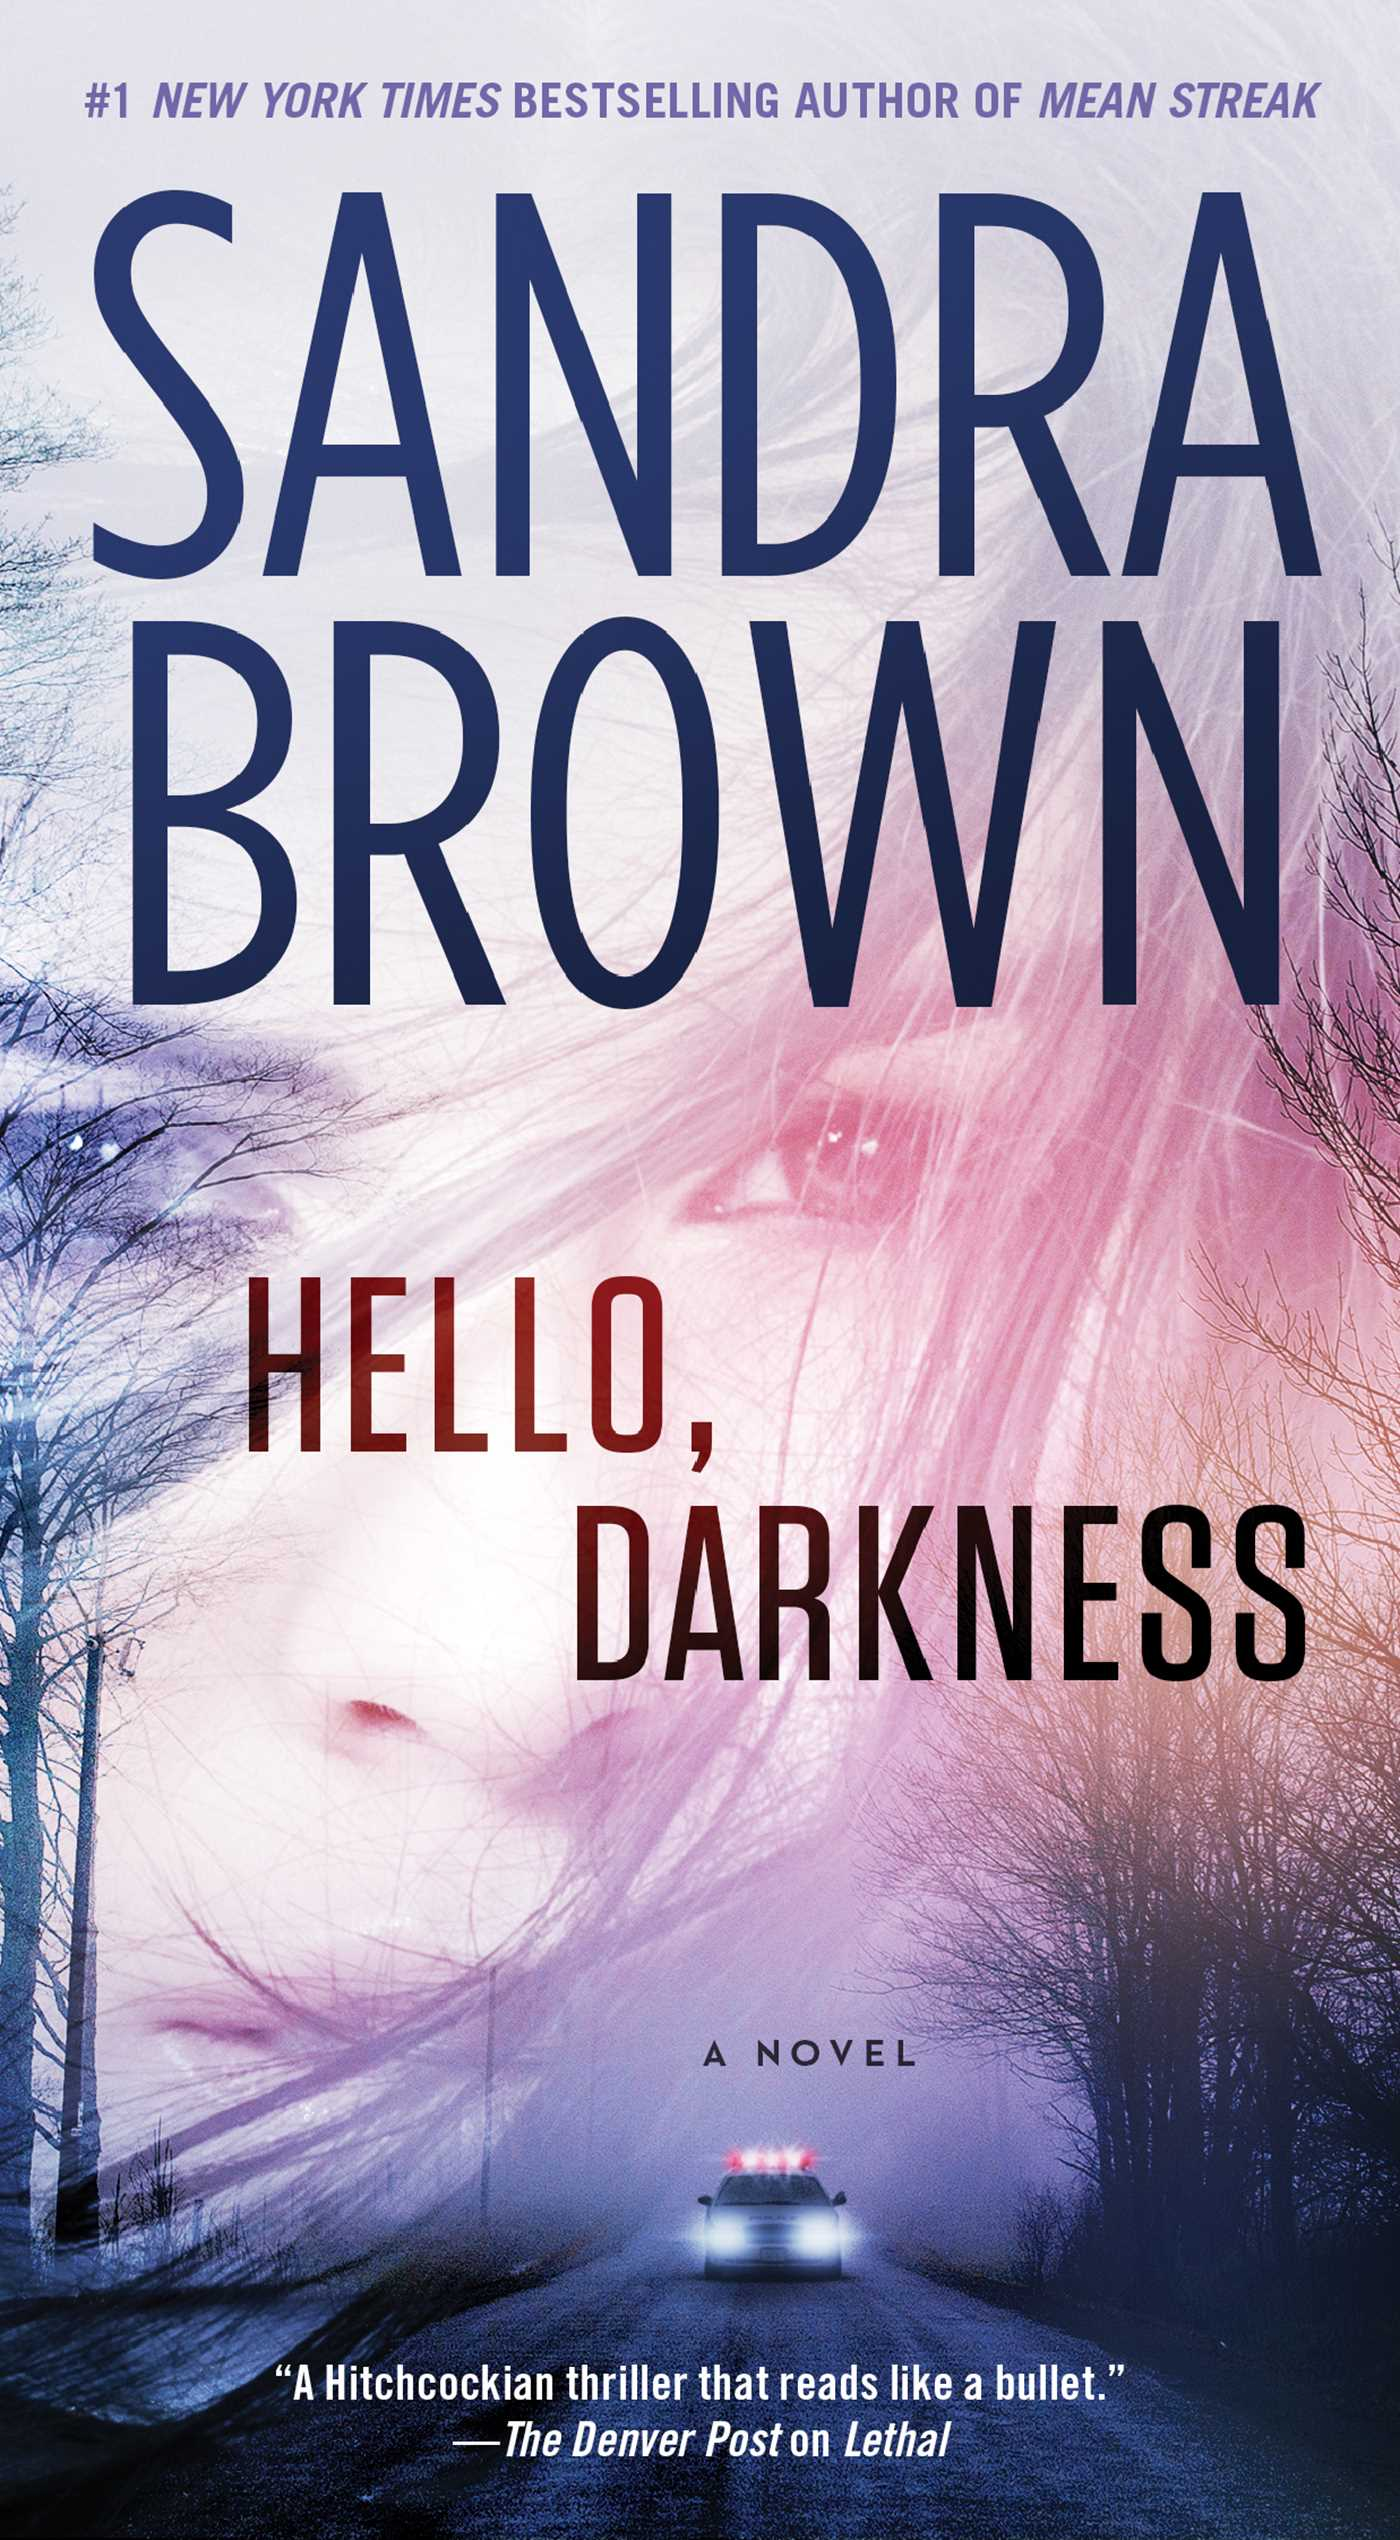 Hello-darkness-9781416537779_hr